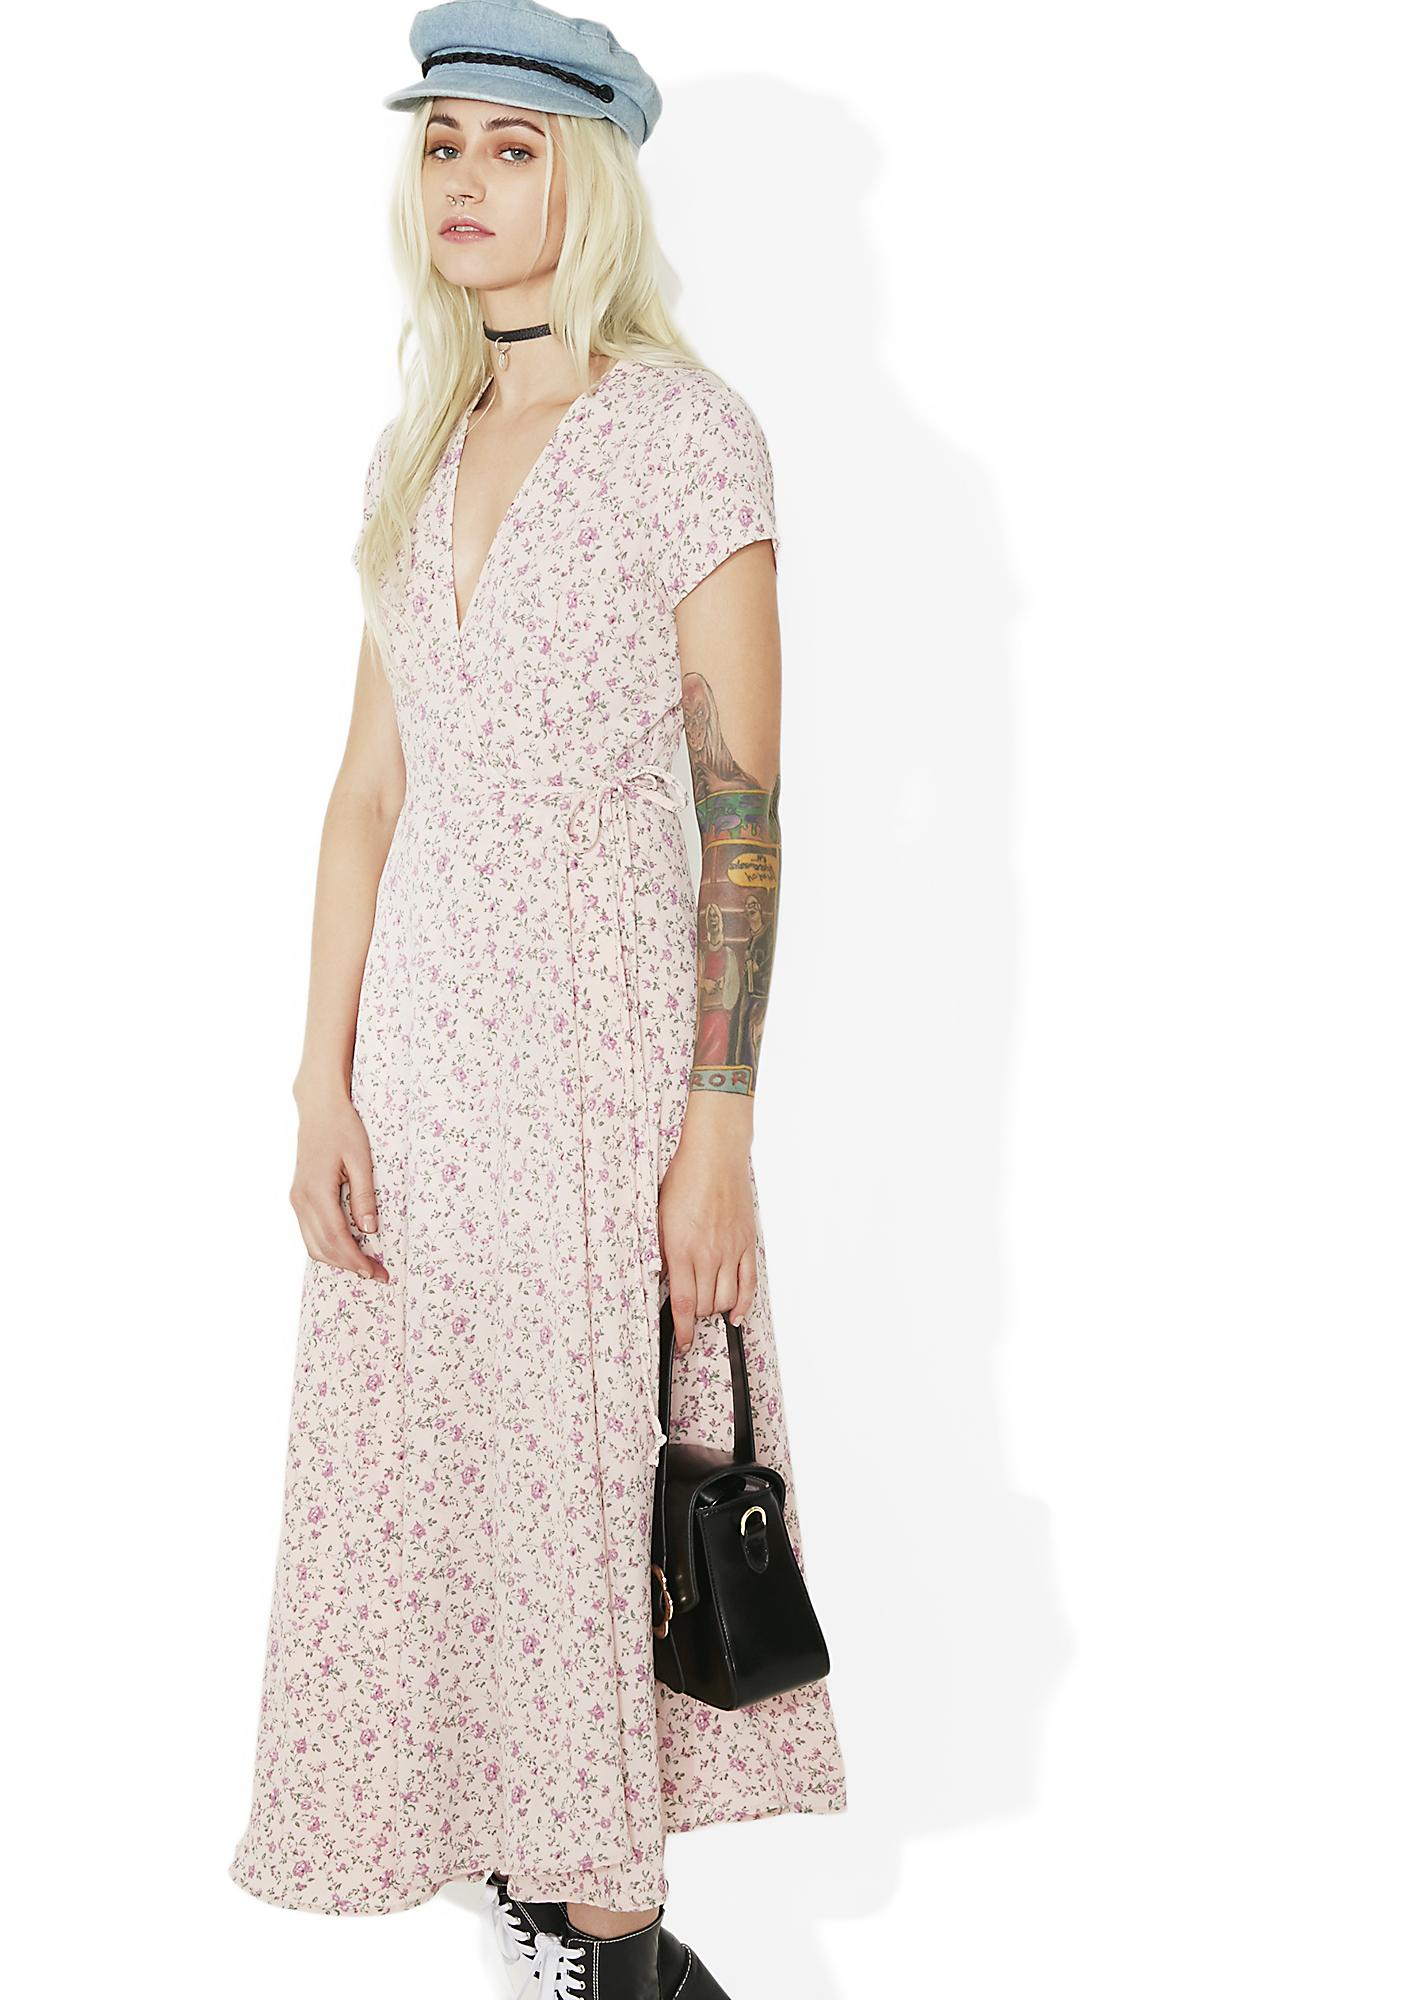 Summa Breeze Floral Dress